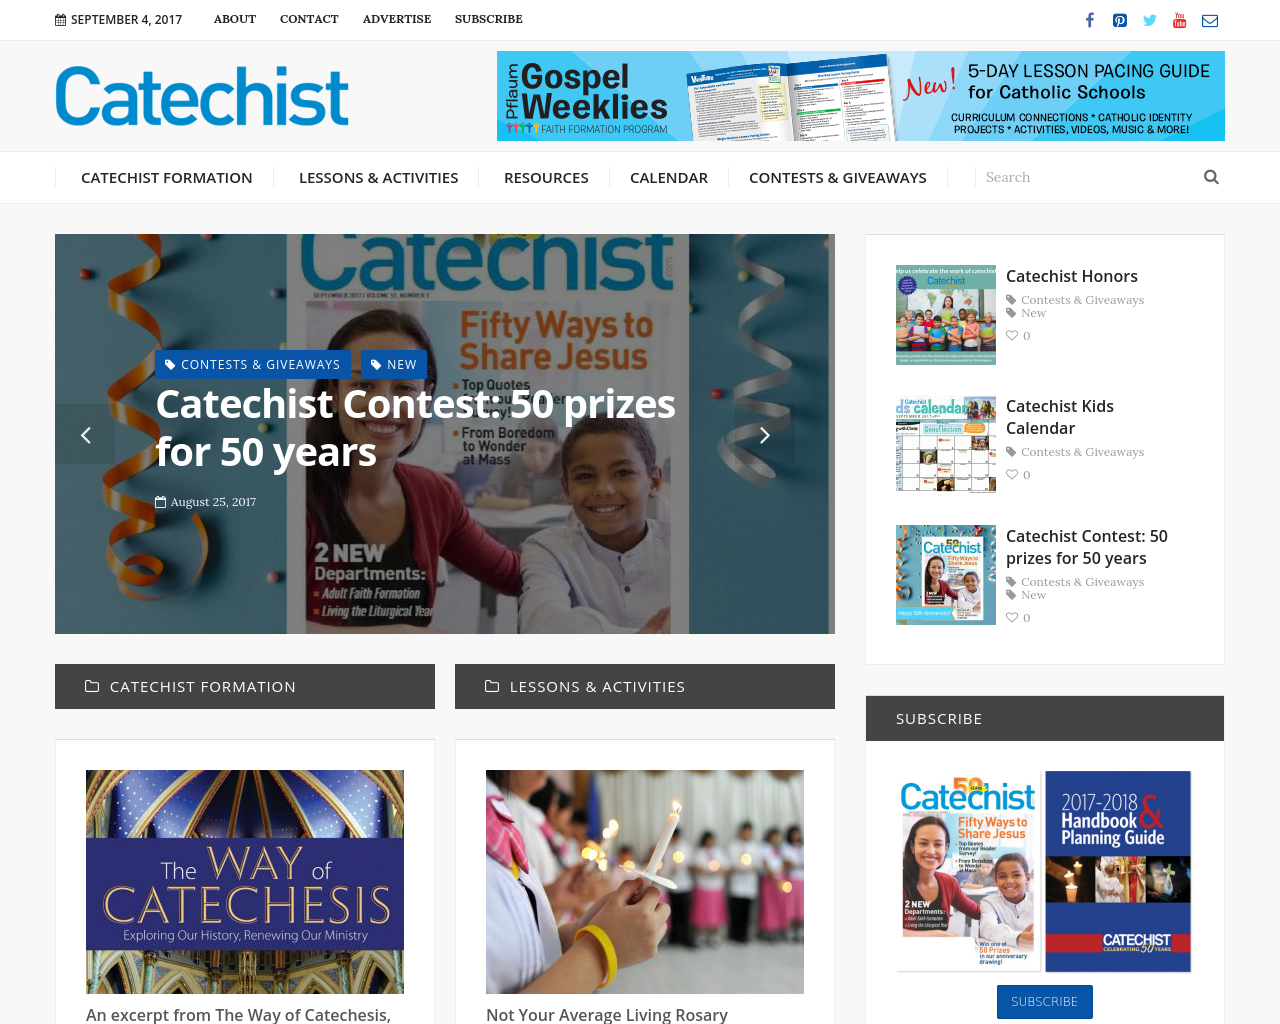 RTJ's-Creative-Catechist-Advertising-Reviews-Pricing